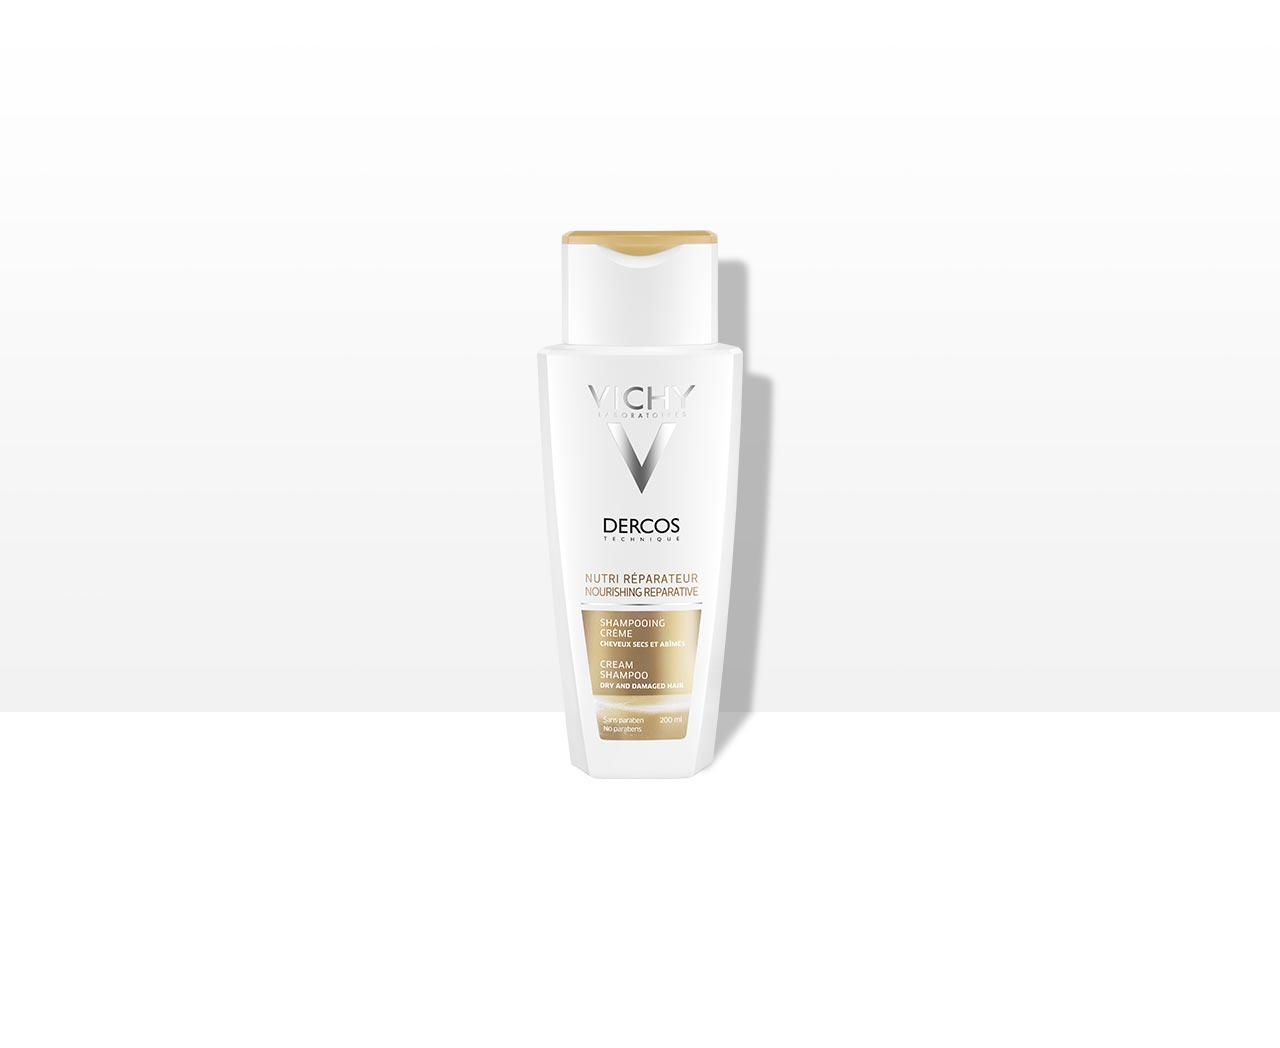 NOURISHING REPARATIVE CREAM -SHAMPOO